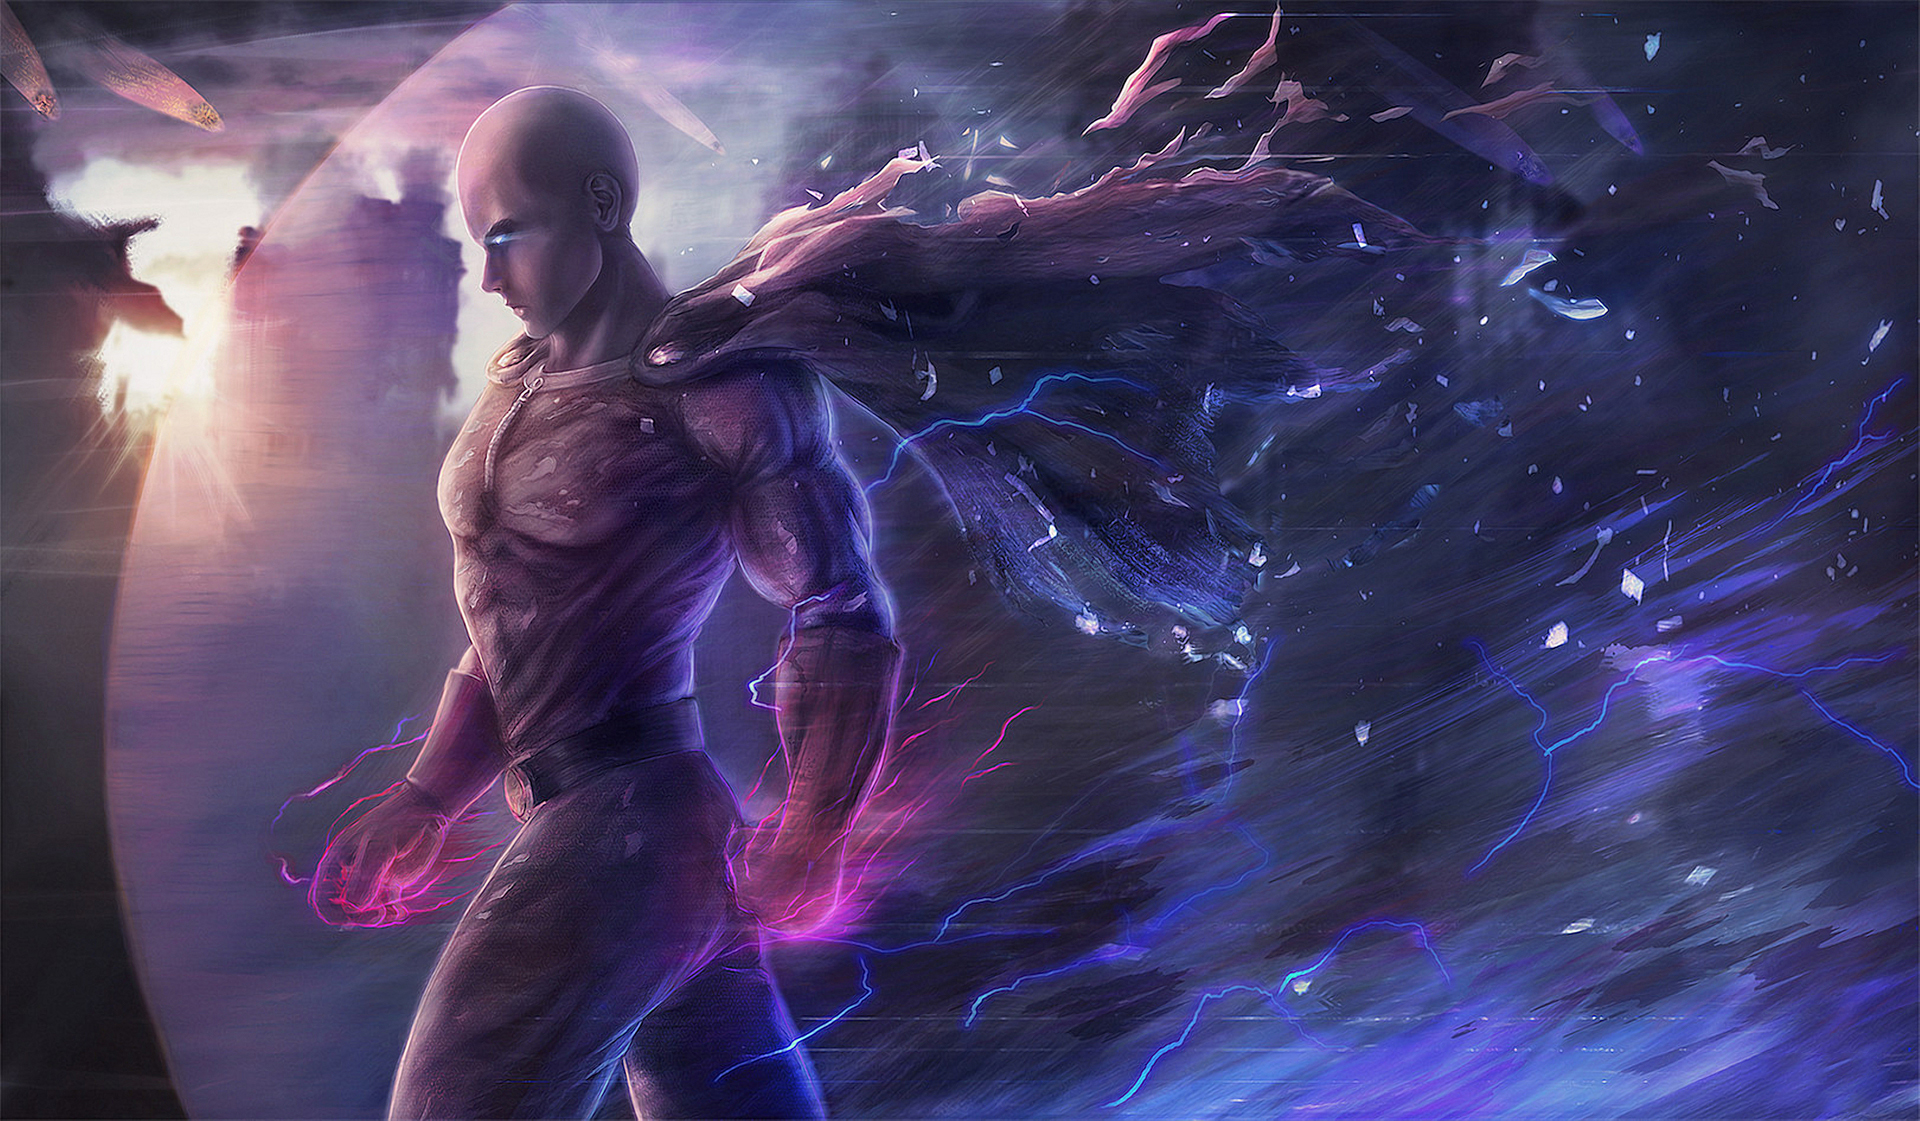 Natsu 3d Wallpapers Saitama One Punch Man Hd Anime 4k Wallpapers Images